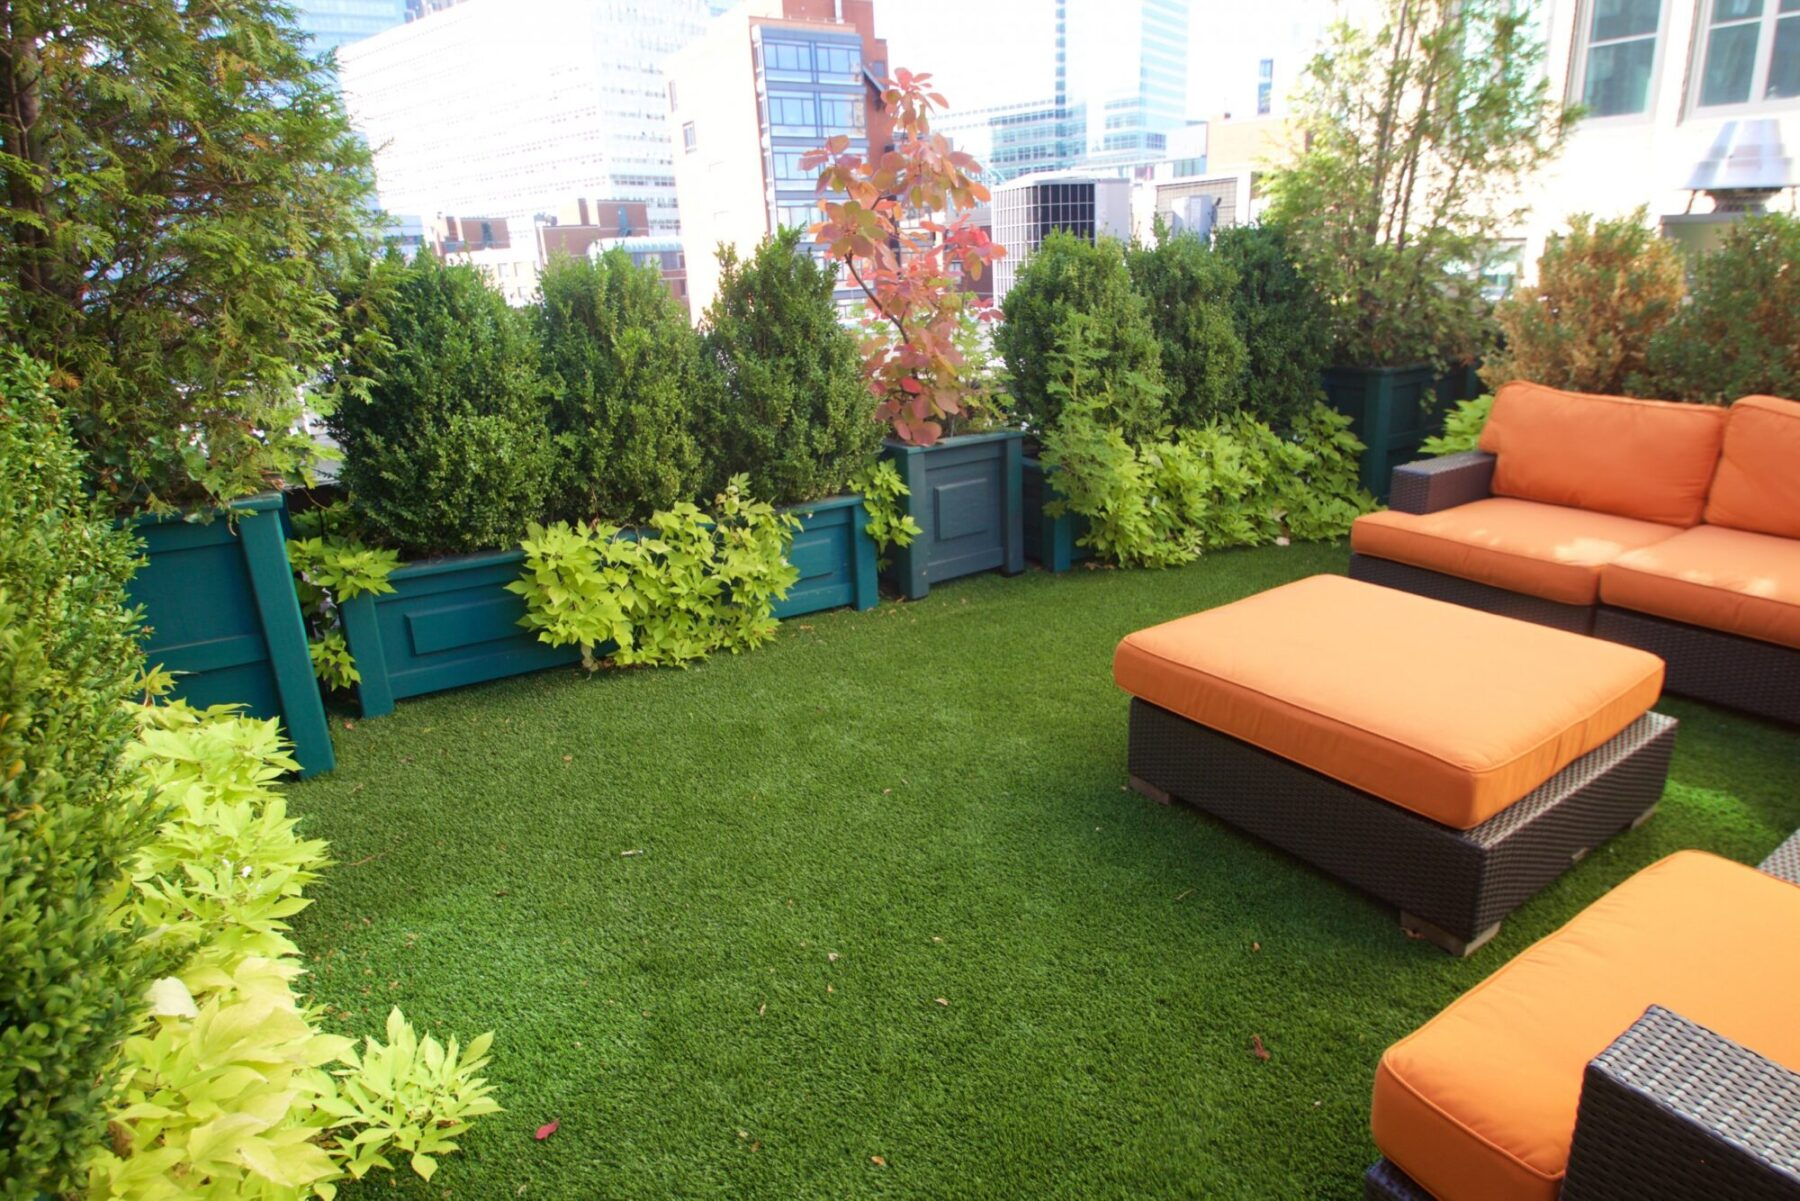 artificial grass installation near me